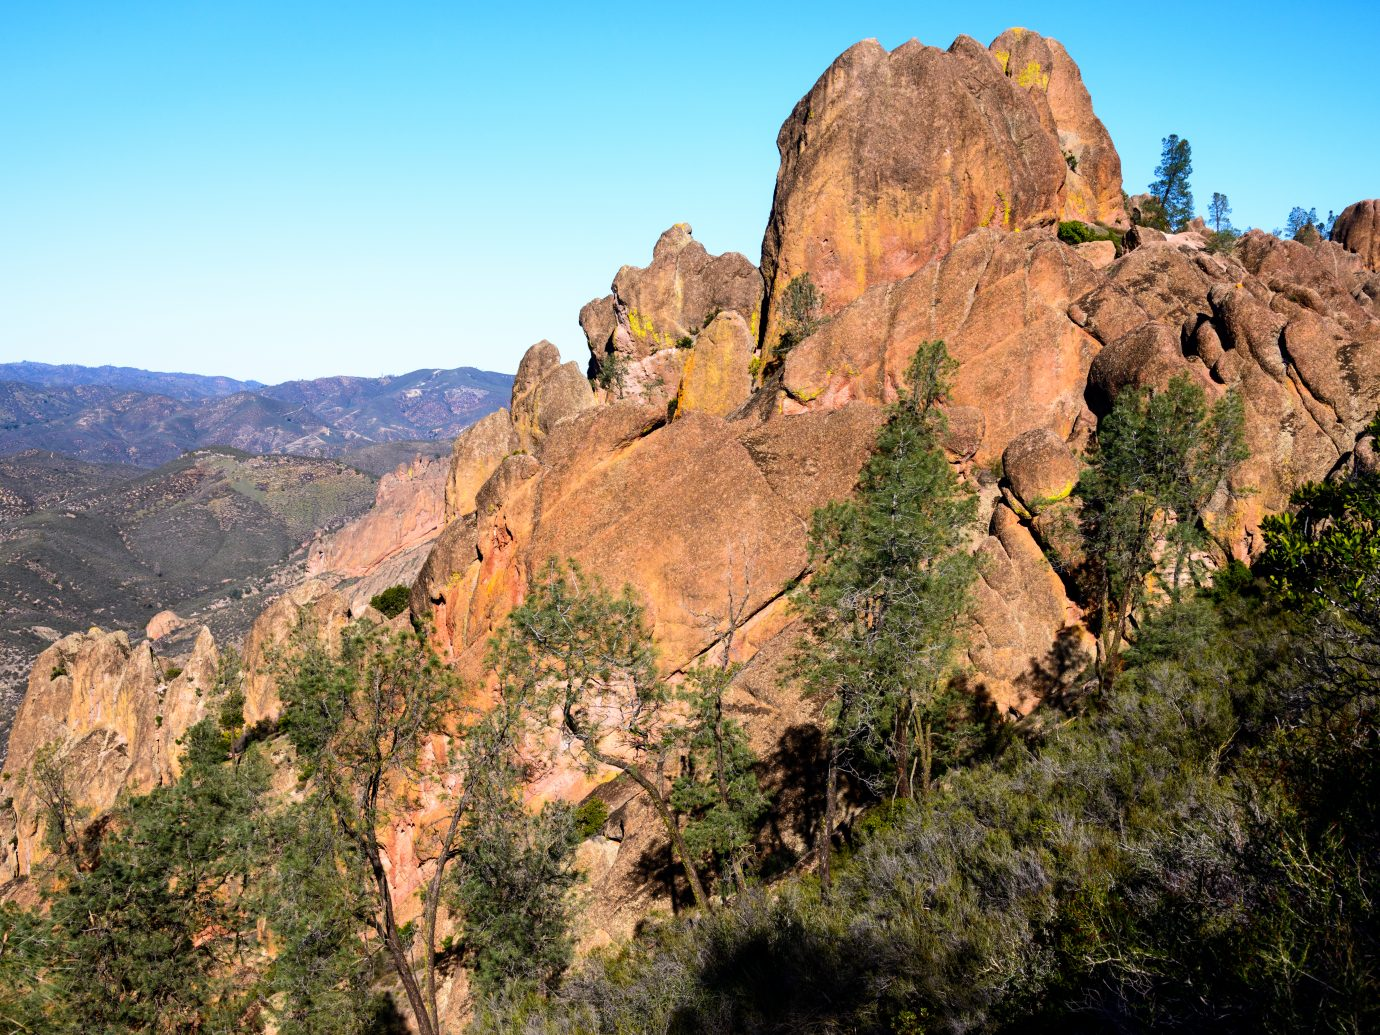 Pinnacles National Park badlands, trail, usa, andreas, geological, park, vibrant, national, wildflowers, gorges, rock, dramatic, mountains, valley, plates, cliffs, pinnacles, formation, service, volcanic, spirals, united, vegetation, fault, san, california, states, fissures, color, canyon, beauty, salinas, mediterranean, image, nature, monument, chaparral, pinnicales, ohlone, soledad, obama, central, field, francisco, theodore, bay, barack, roosevelt, monterey